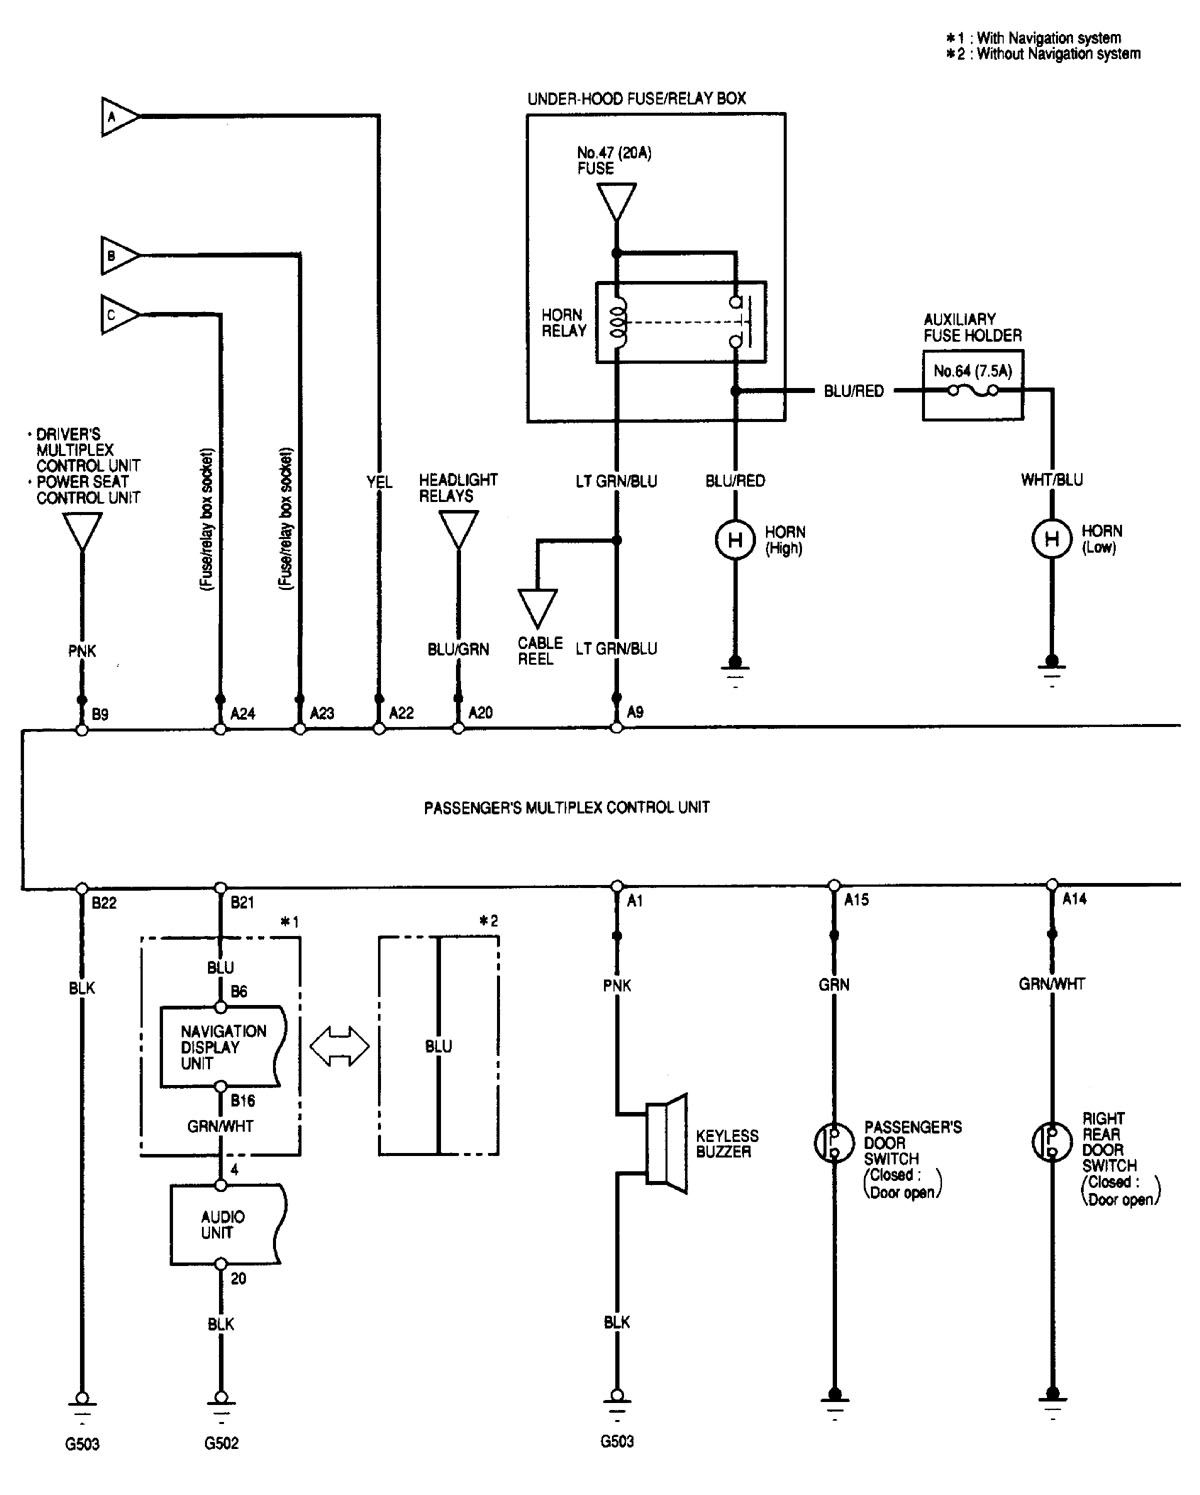 37 Ford Tail Light Wiring Diagram. Ford. Auto Wiring Diagram